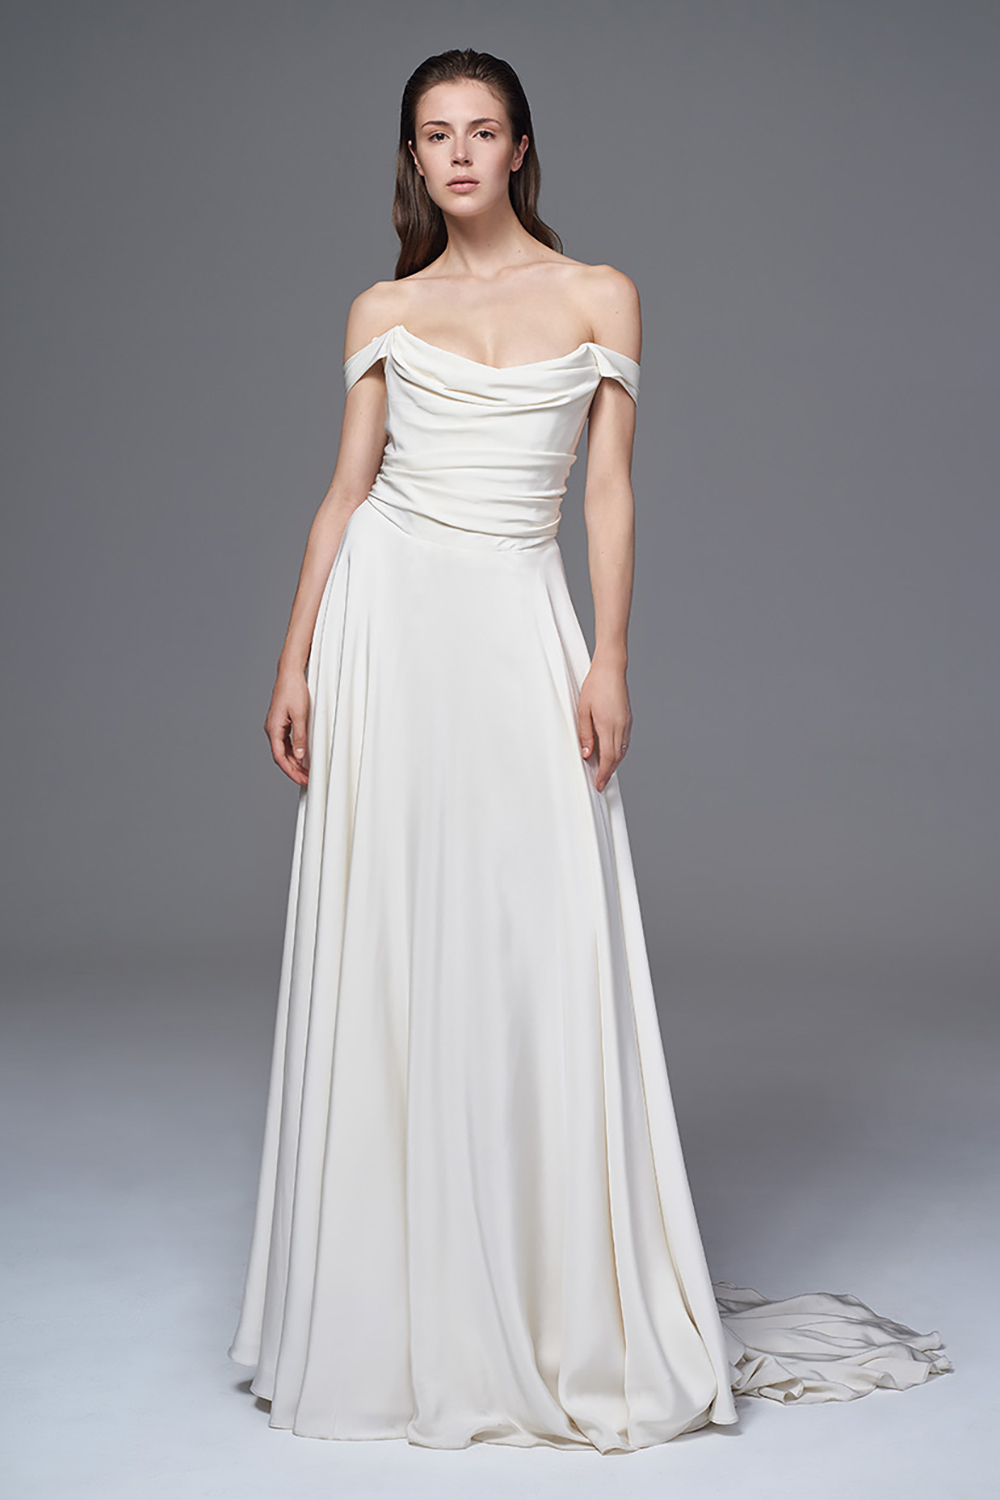 THE CHARLOTTE CORSET DRESS IN IVORY SILK CREPE OFF THE SHOULDER BRIDAL WEDDING DRESS BY HALFPENNY LONDON